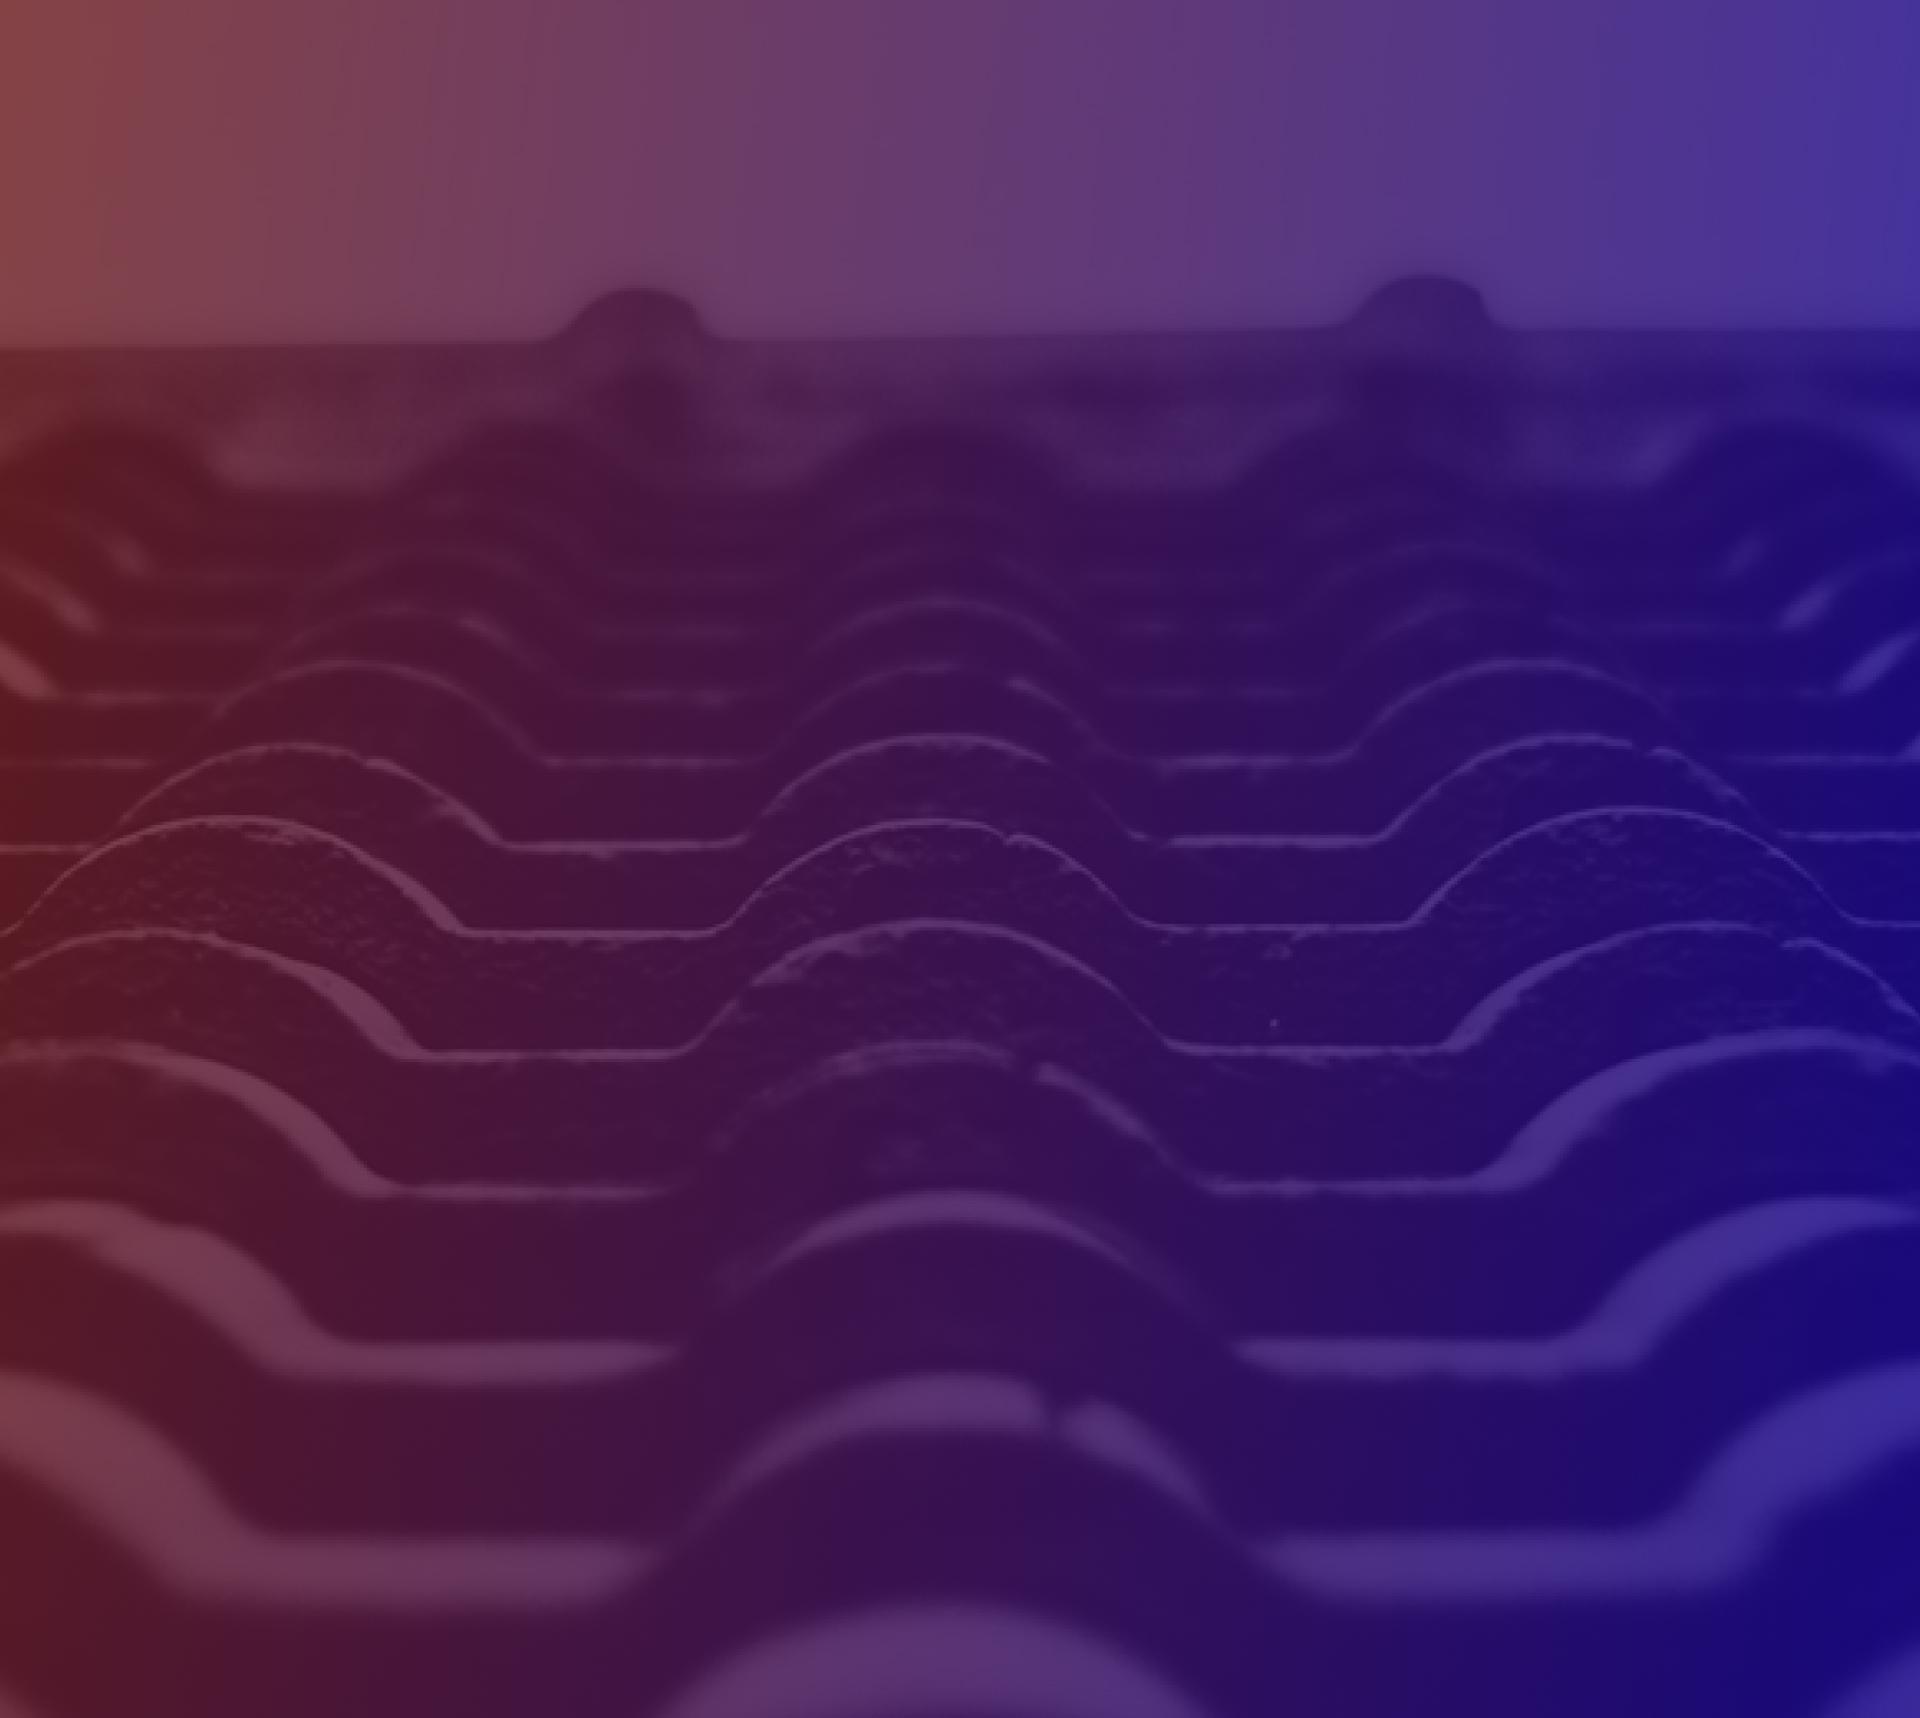 Gradient background of a tile roof with a purple and blue overlay.